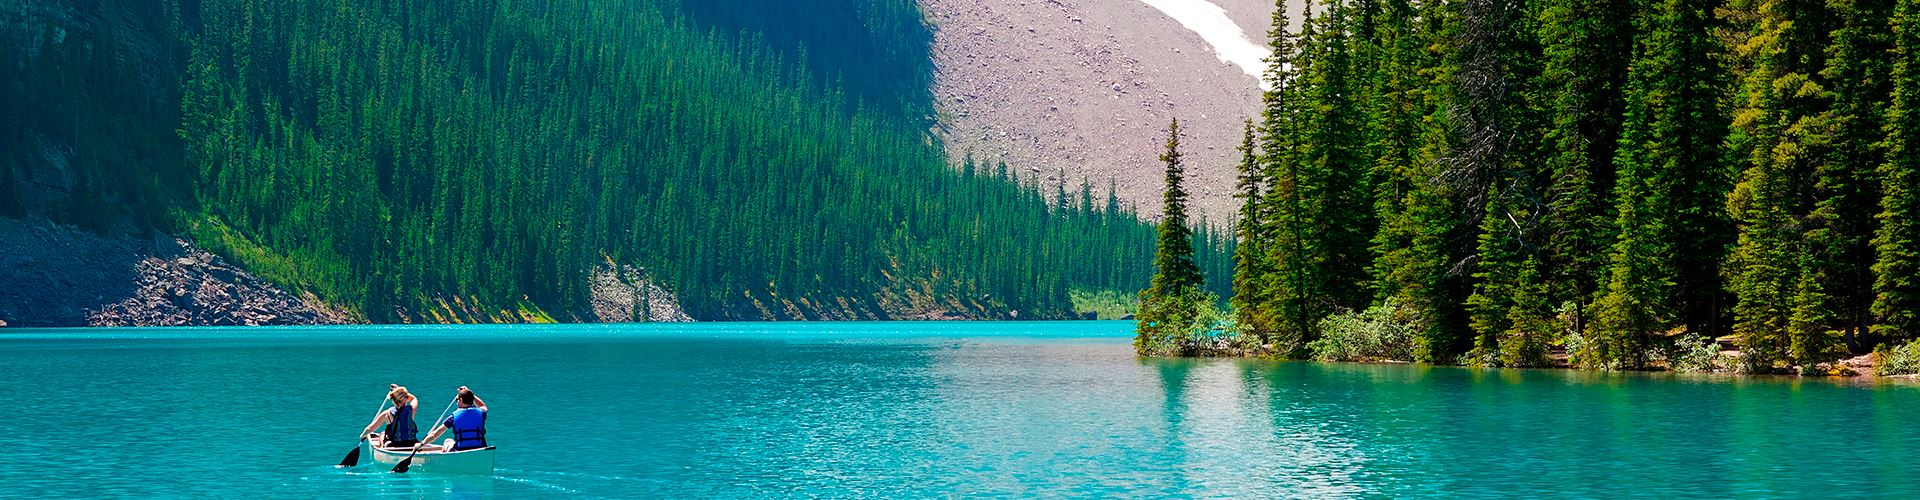 Boating-at-beautiful-moraine-lake-at-banff-national-park,-alberta,-canada.jpg